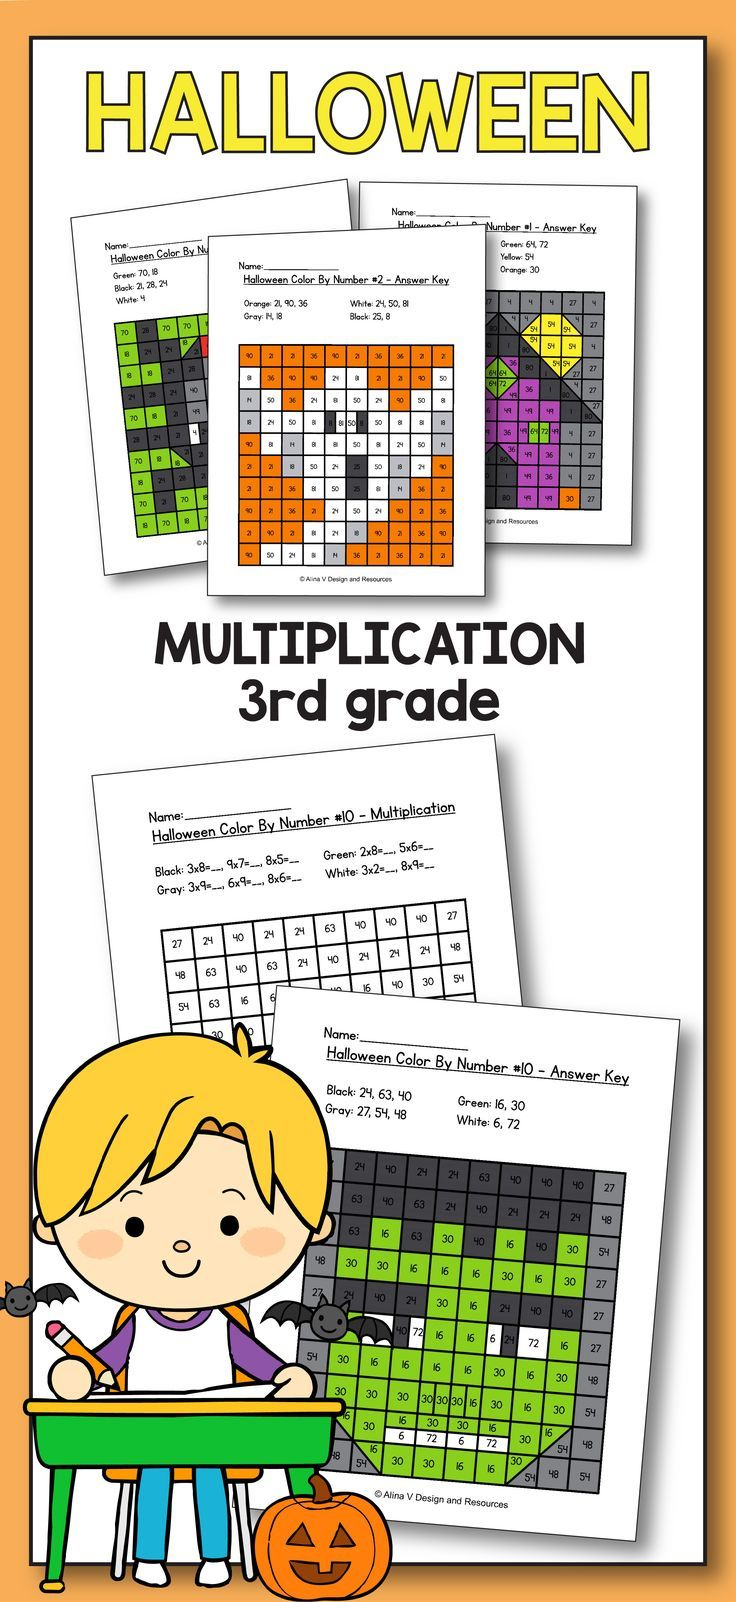 small resolution of Halloween Multiplication Math Worksheets for 3rd grade kids is fun with  these hundreds c…   Halloween math activities